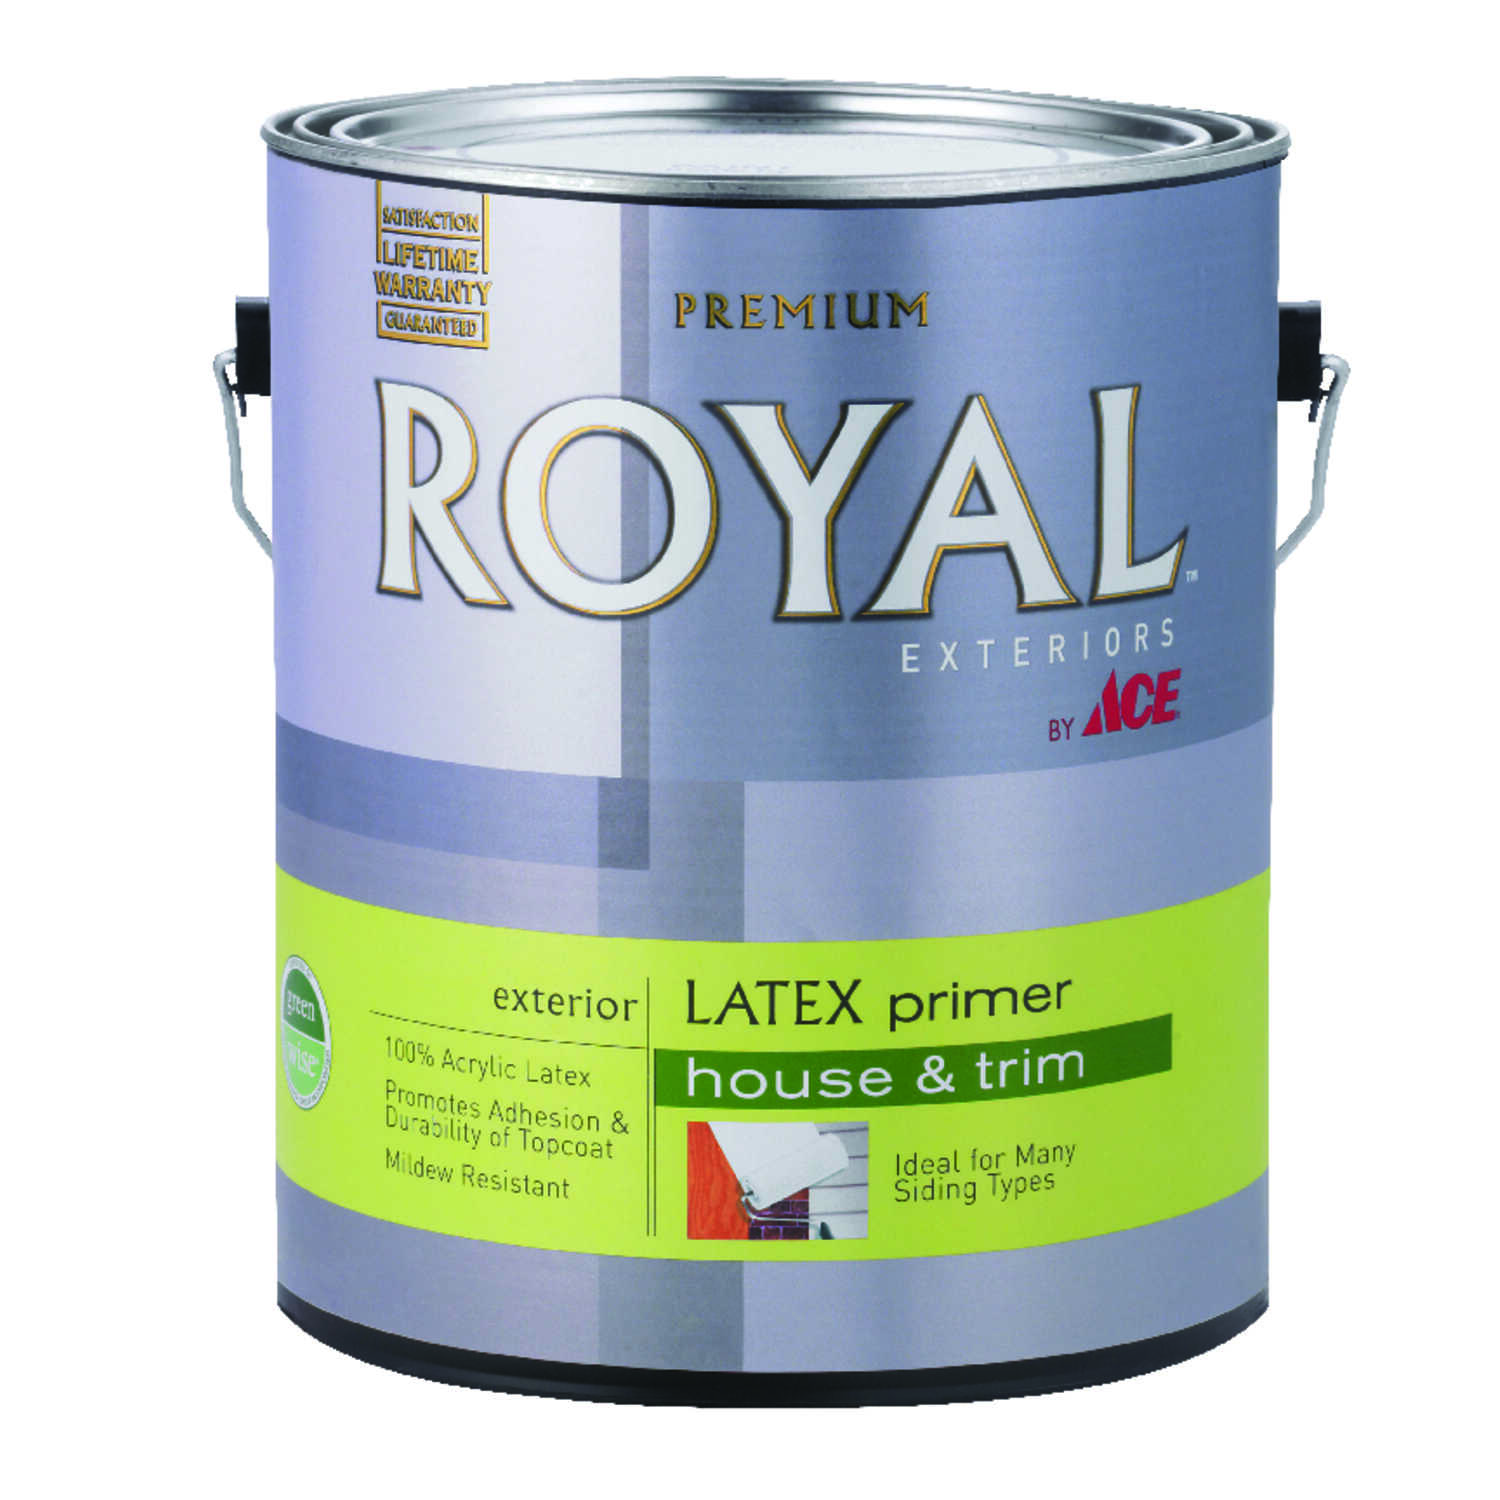 Ace  Royal Exteriors  Flat  White  Acrylic Latex  Latex Primer  For Multiple Surfaces 1 gal.